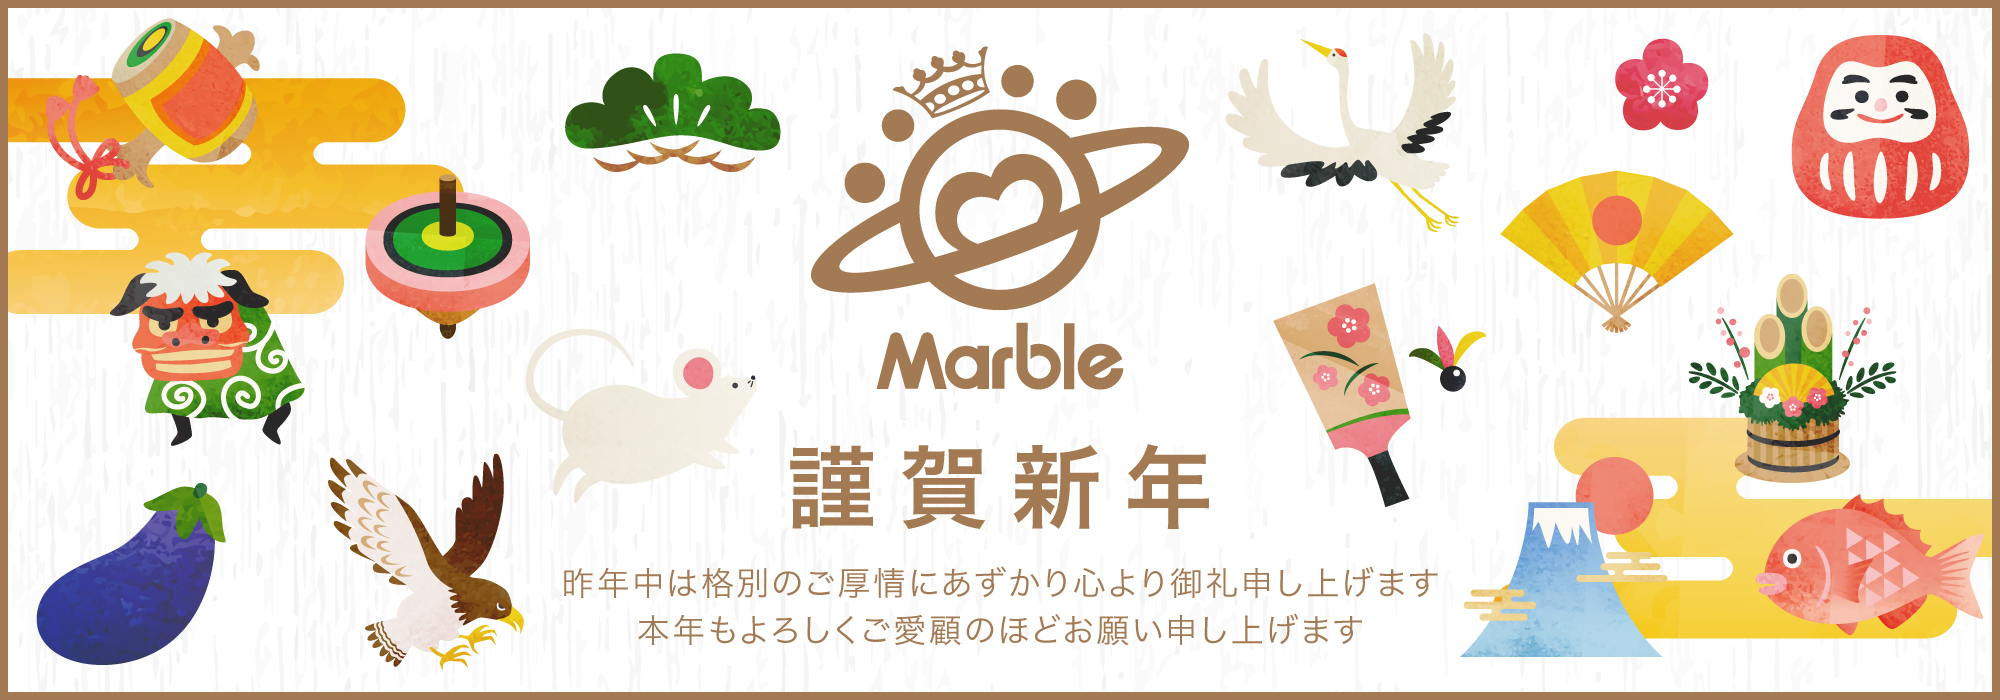 Marbleアパレル